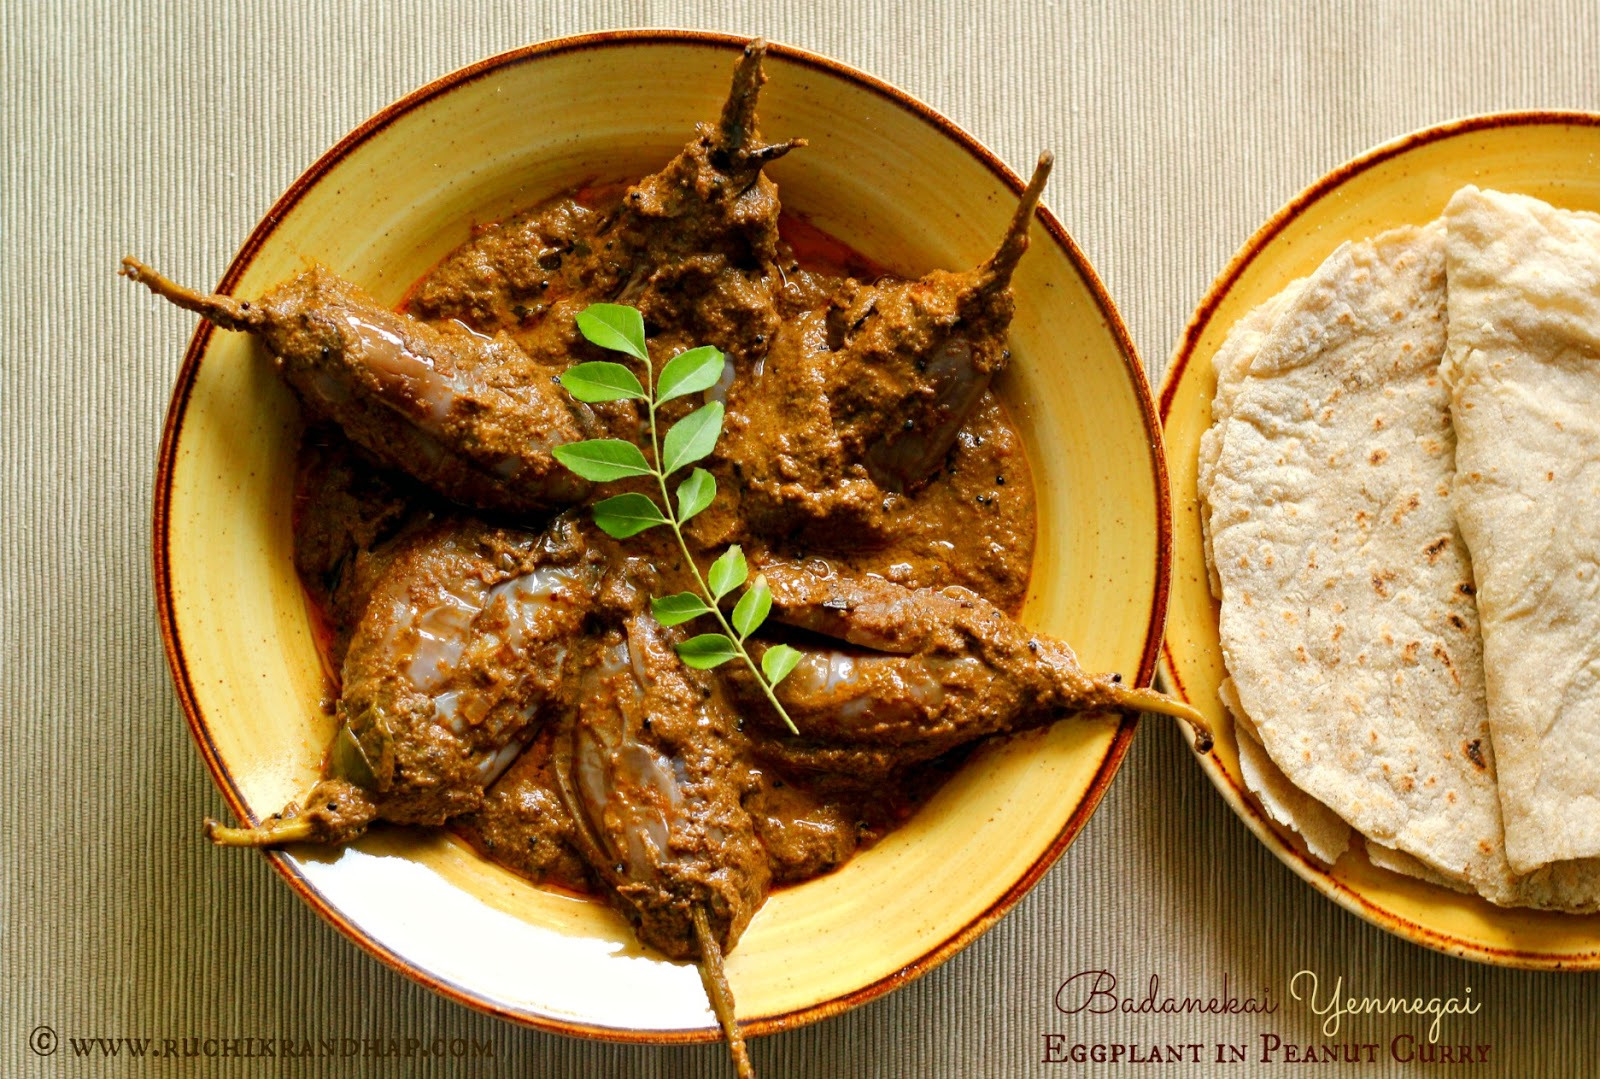 Badanekai yennegai north karnataka style eggplant in peanut curry last months theme for breadbakers the bread baking group that i am part of had given us the theme of ancient grains and i picked jolada rotti or sorghum forumfinder Gallery